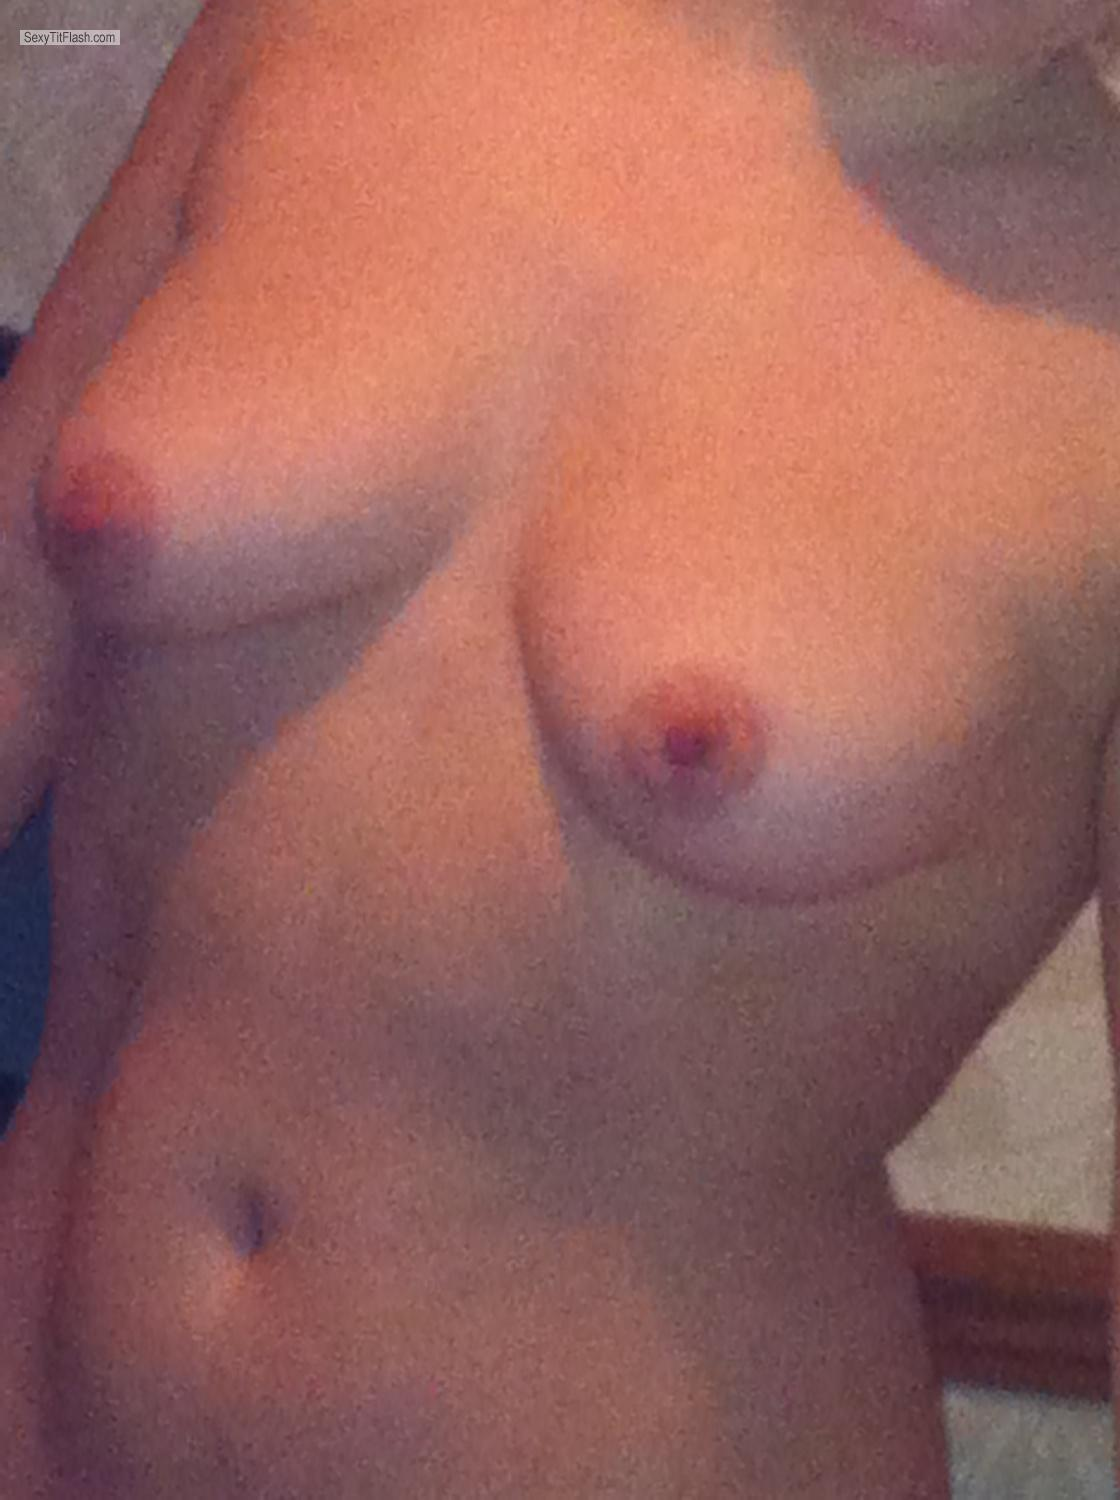 Small Tits Average